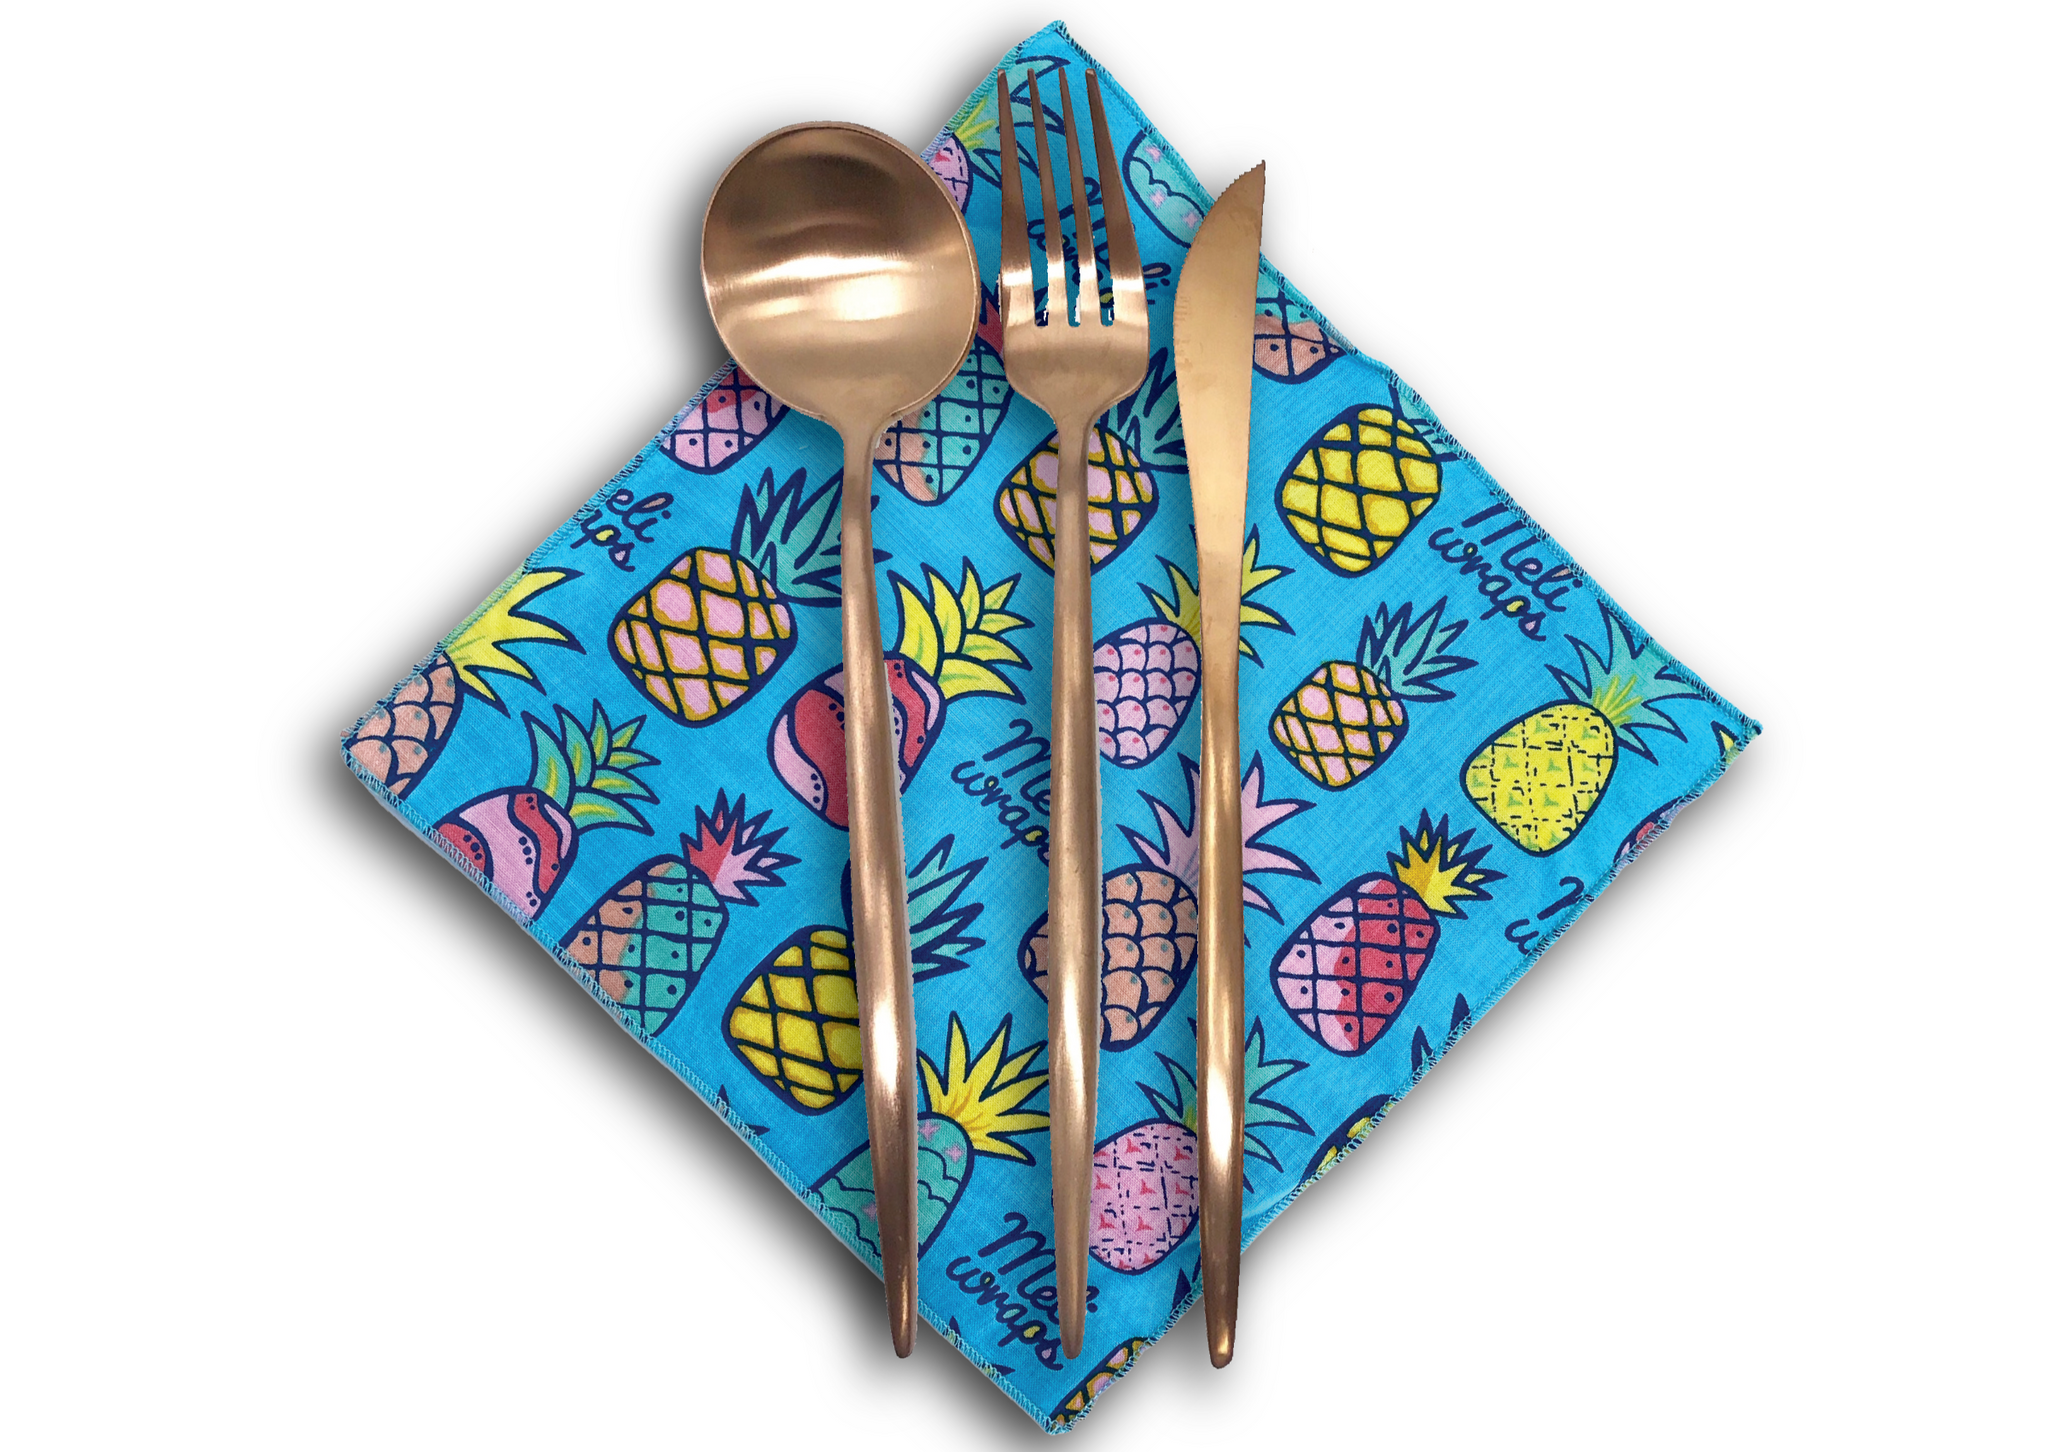 Meli Wraps Organic Cotton Reusable  Napkin - Pineapple Print